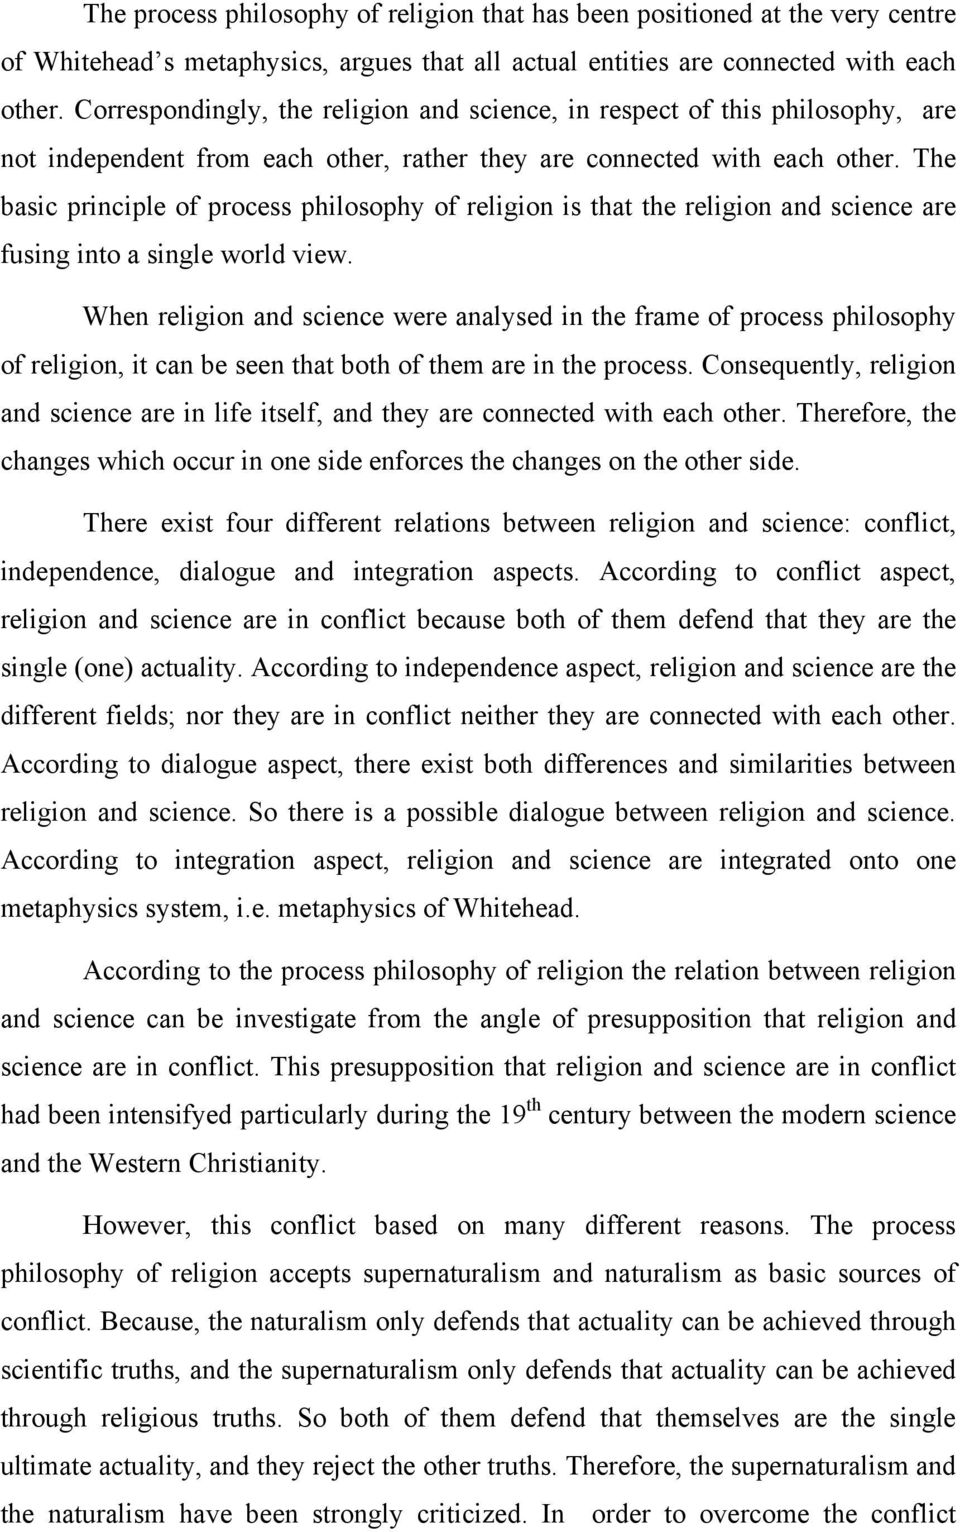 The basic principle of process philosophy of religion is that the religion and science are fusing into a single world view.